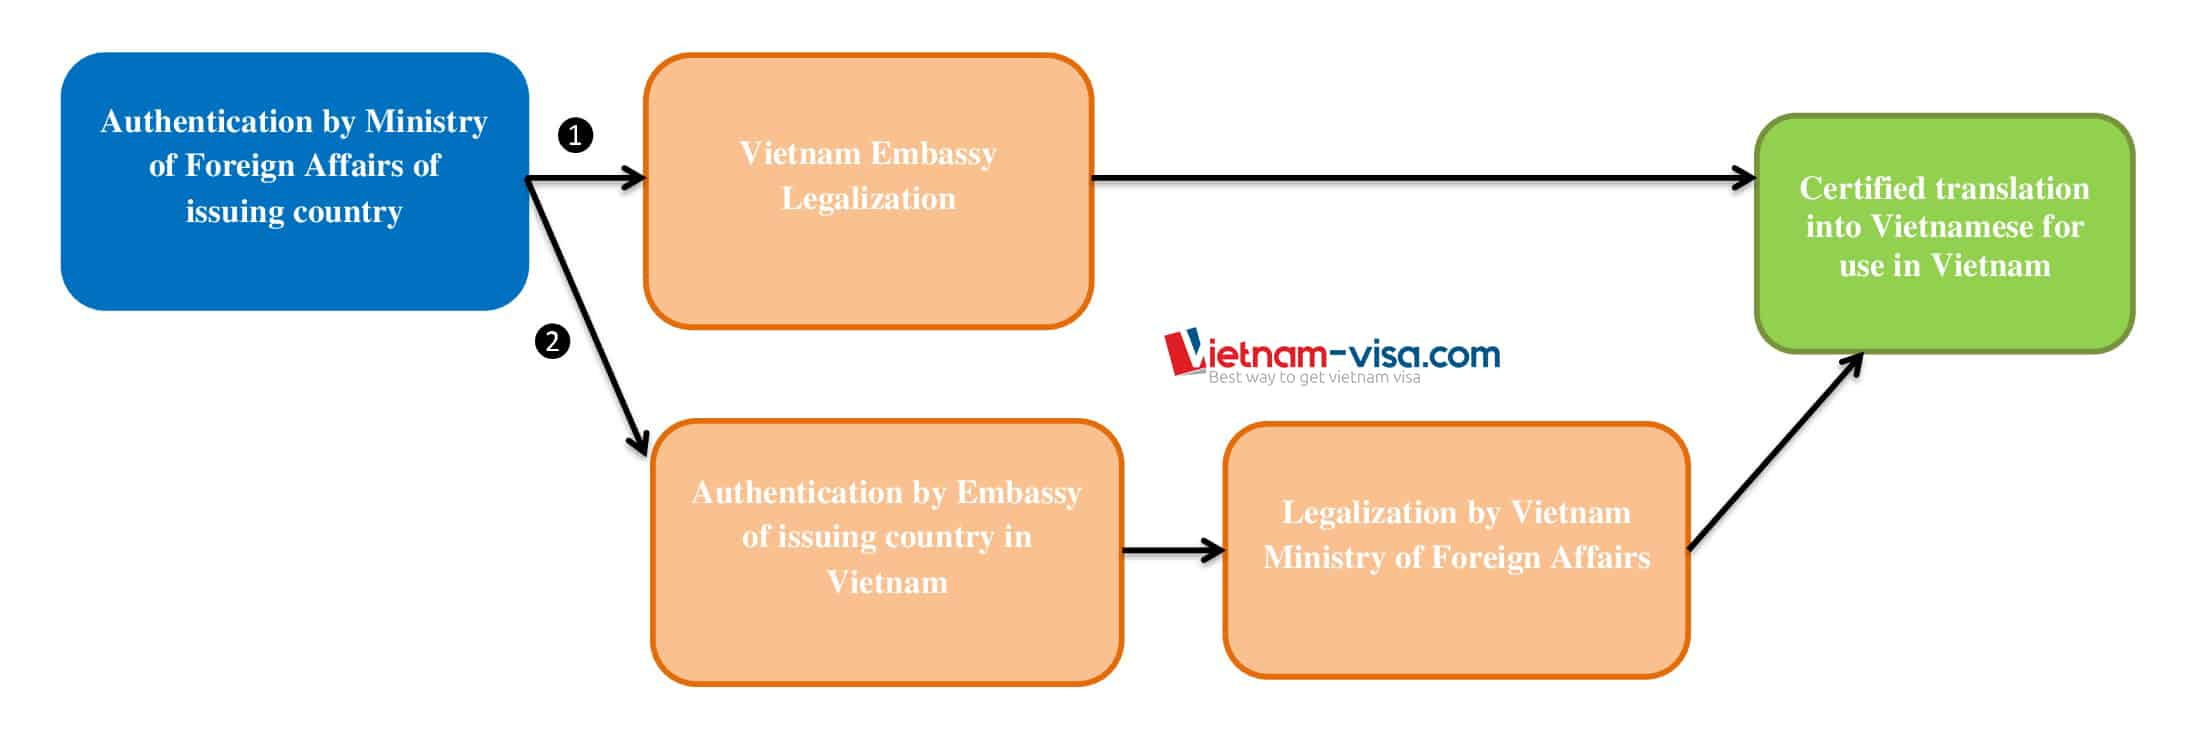 The processes to legalize foreign documents for use in Vietnam